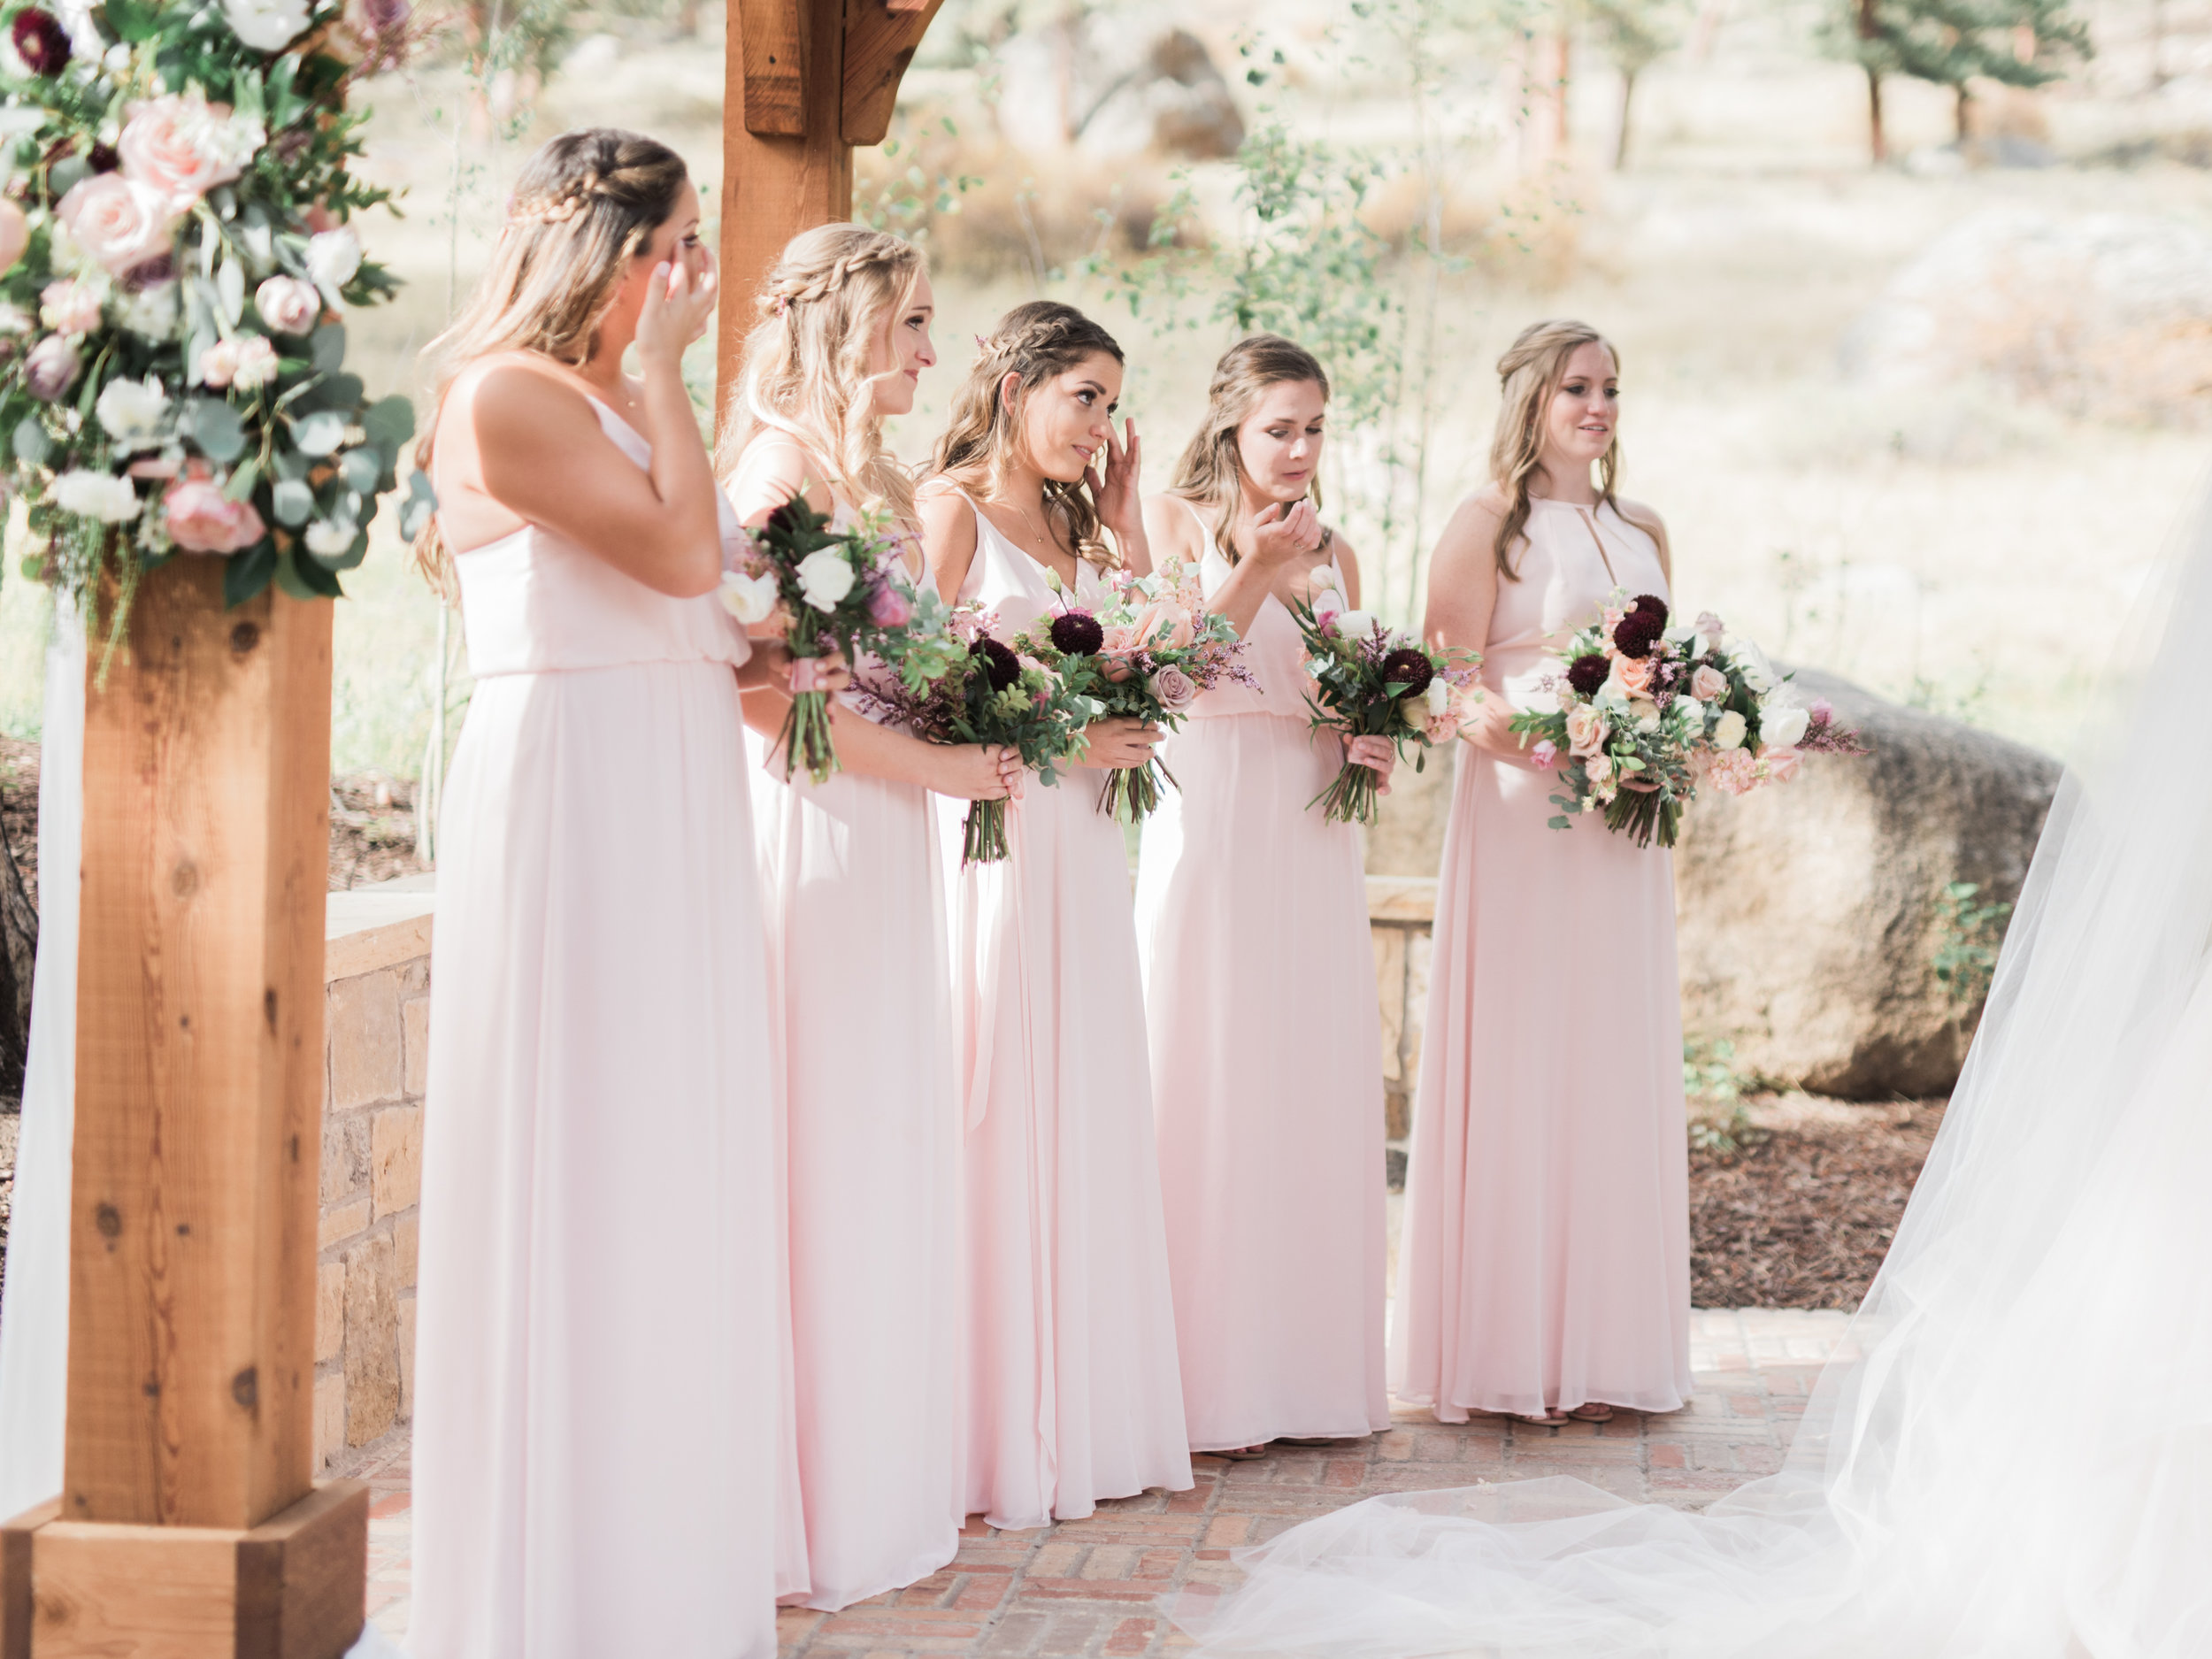 Flowers by Lace and Lilies, bridal bouquet, blush bridesmaid dresses, military wedding, blush flowers, burgundy flowers, mountain wedding, wedding photography